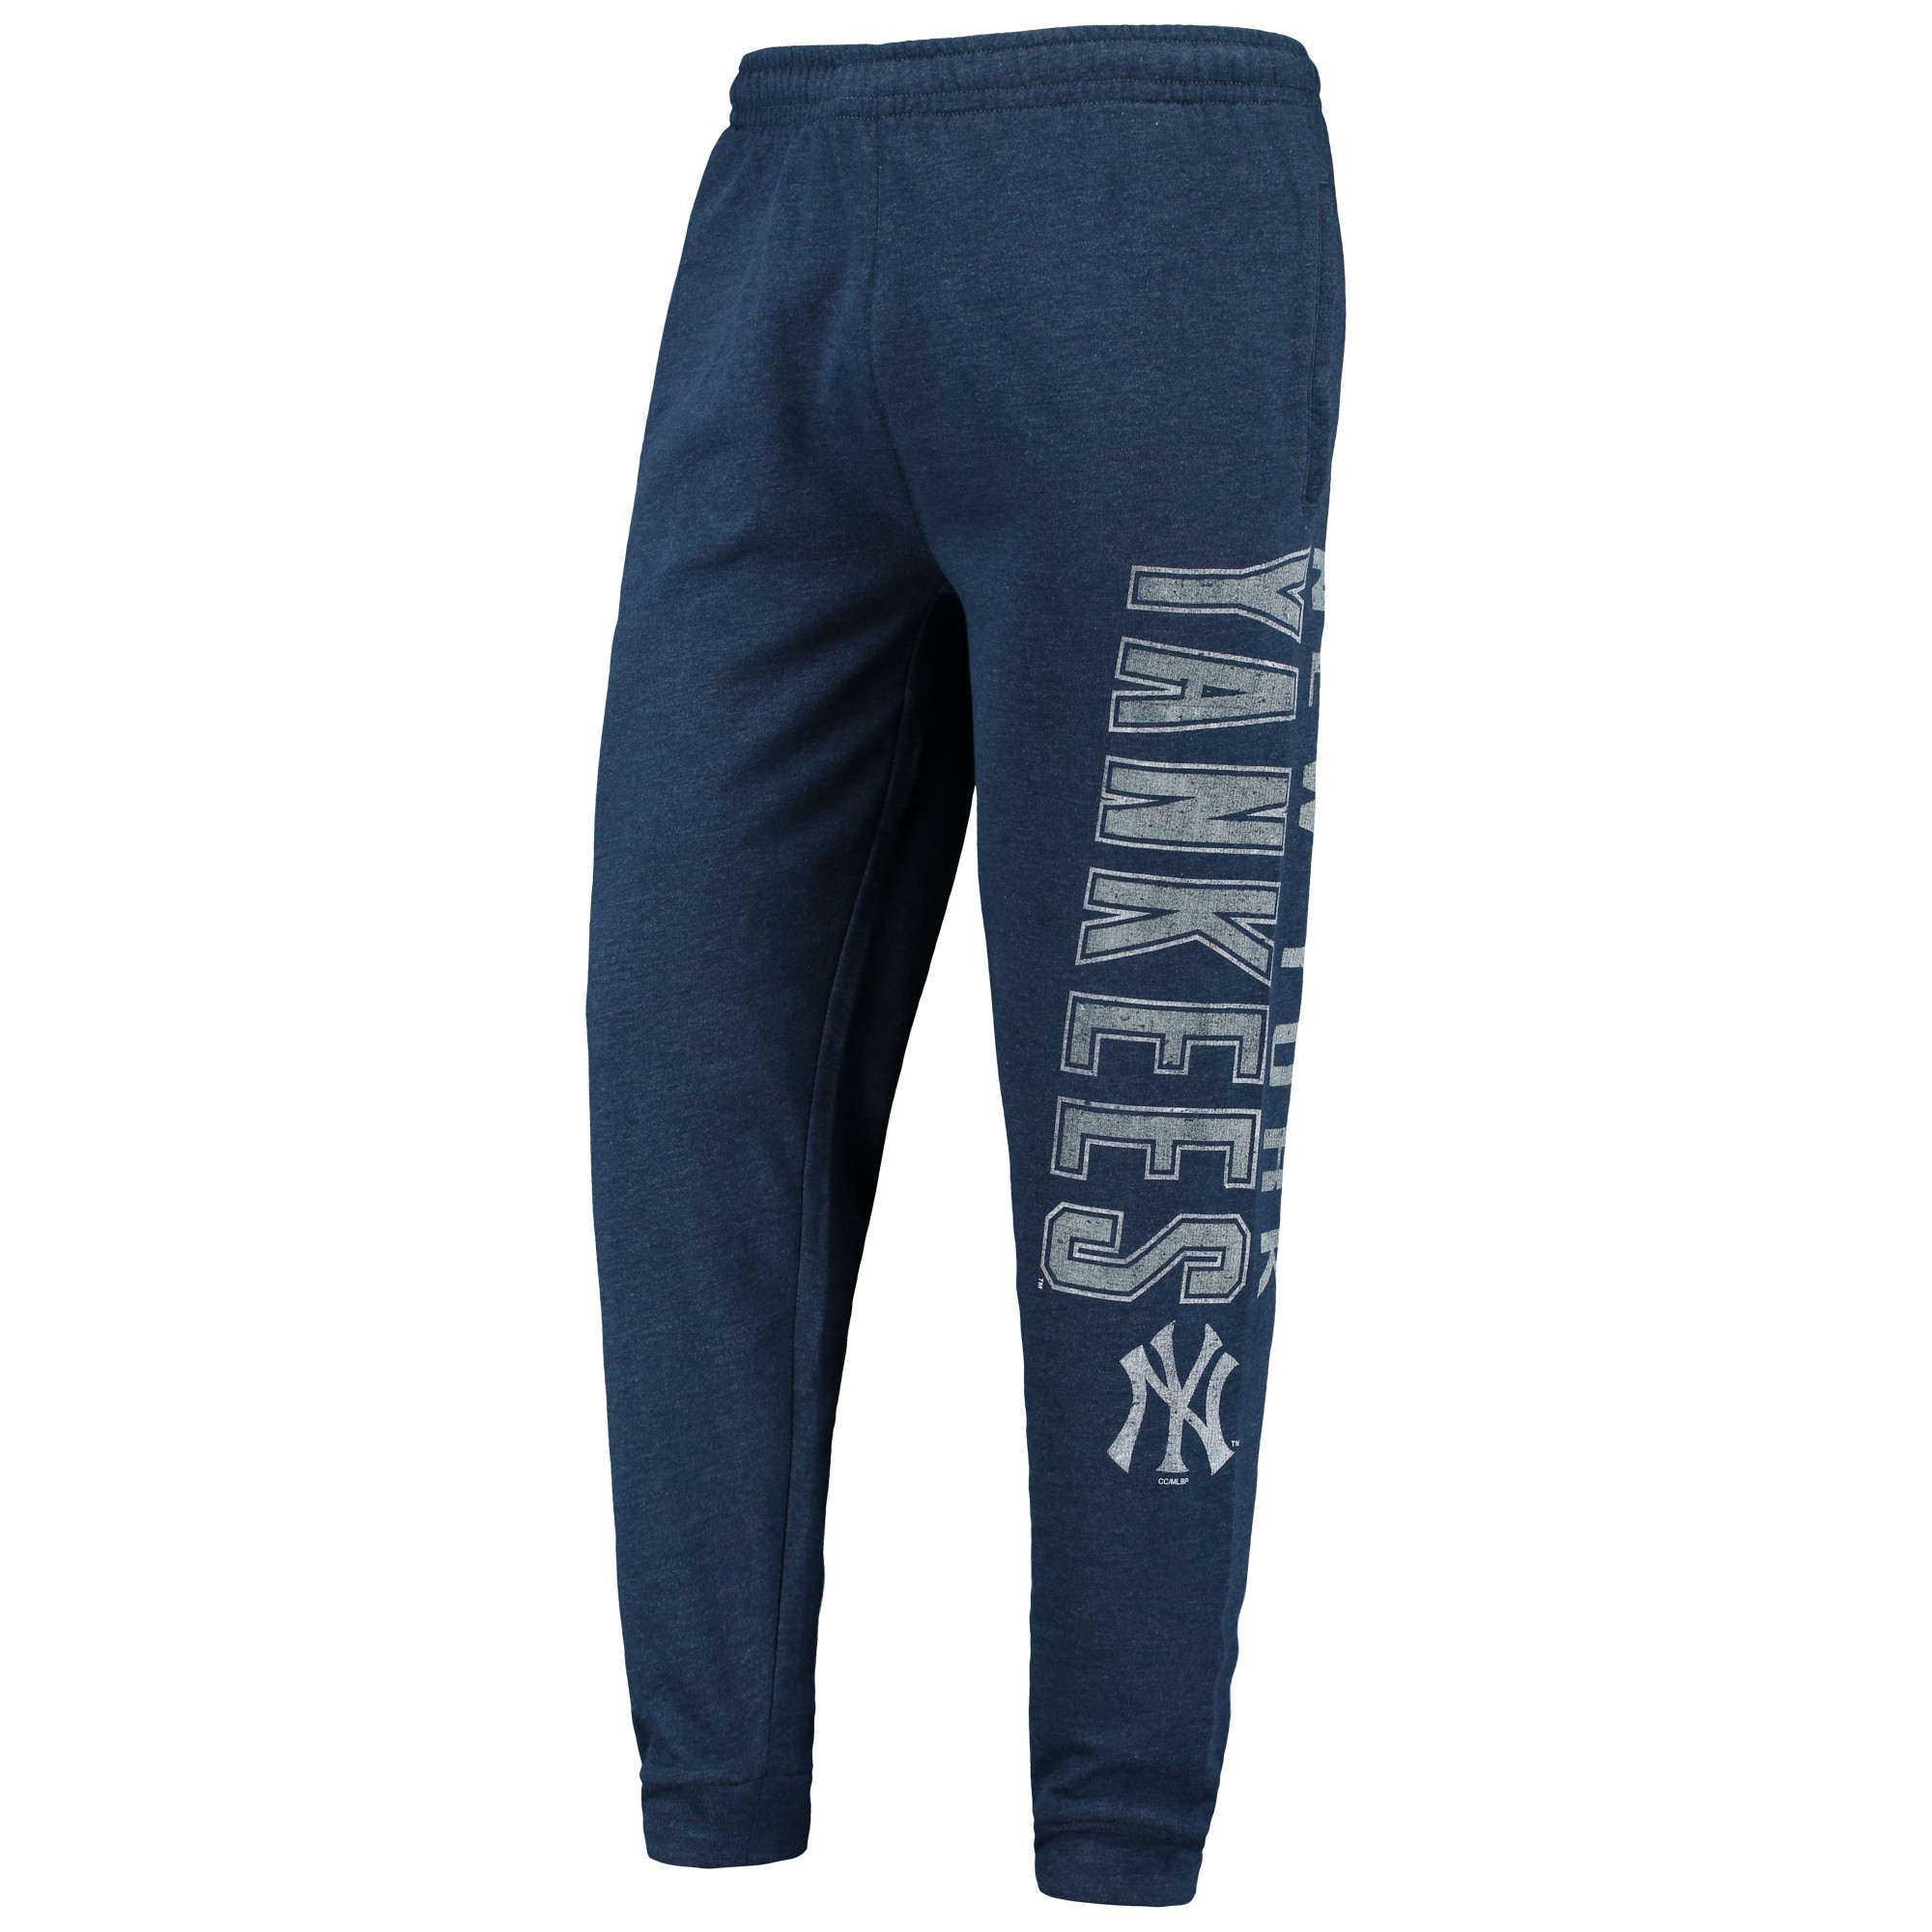 New York Yankees Concepts Sport Squeeze Play Pants - Heathered Navy